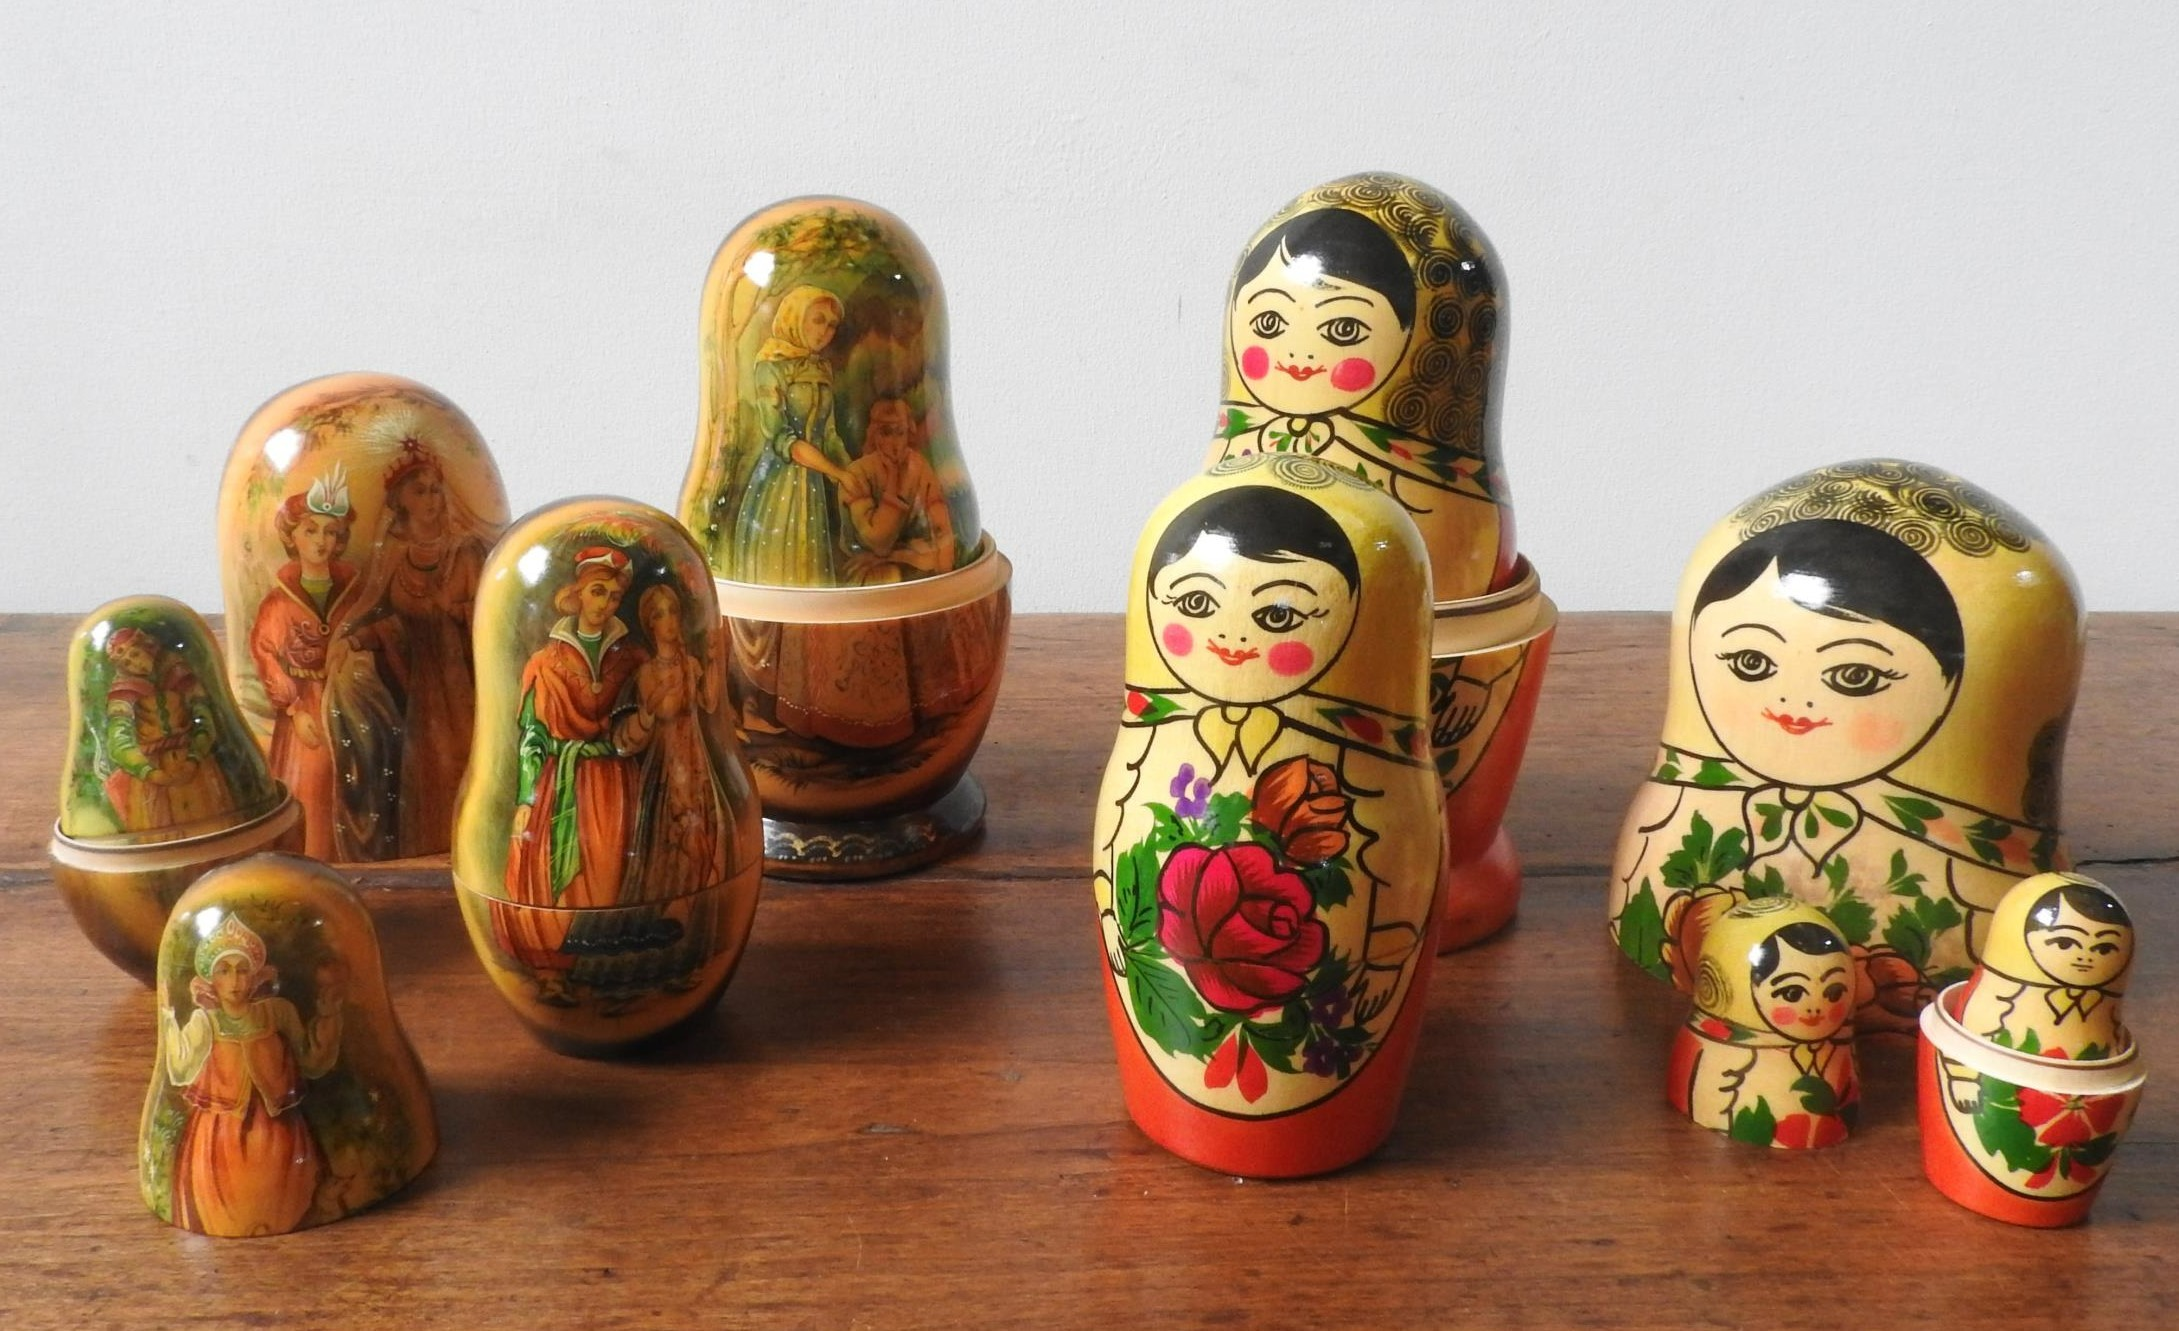 TWO SETS OF STACKING GRADUATED RUSSIAN DOLLS, ten dolls in each set, one set in traditional doll - Image 3 of 4